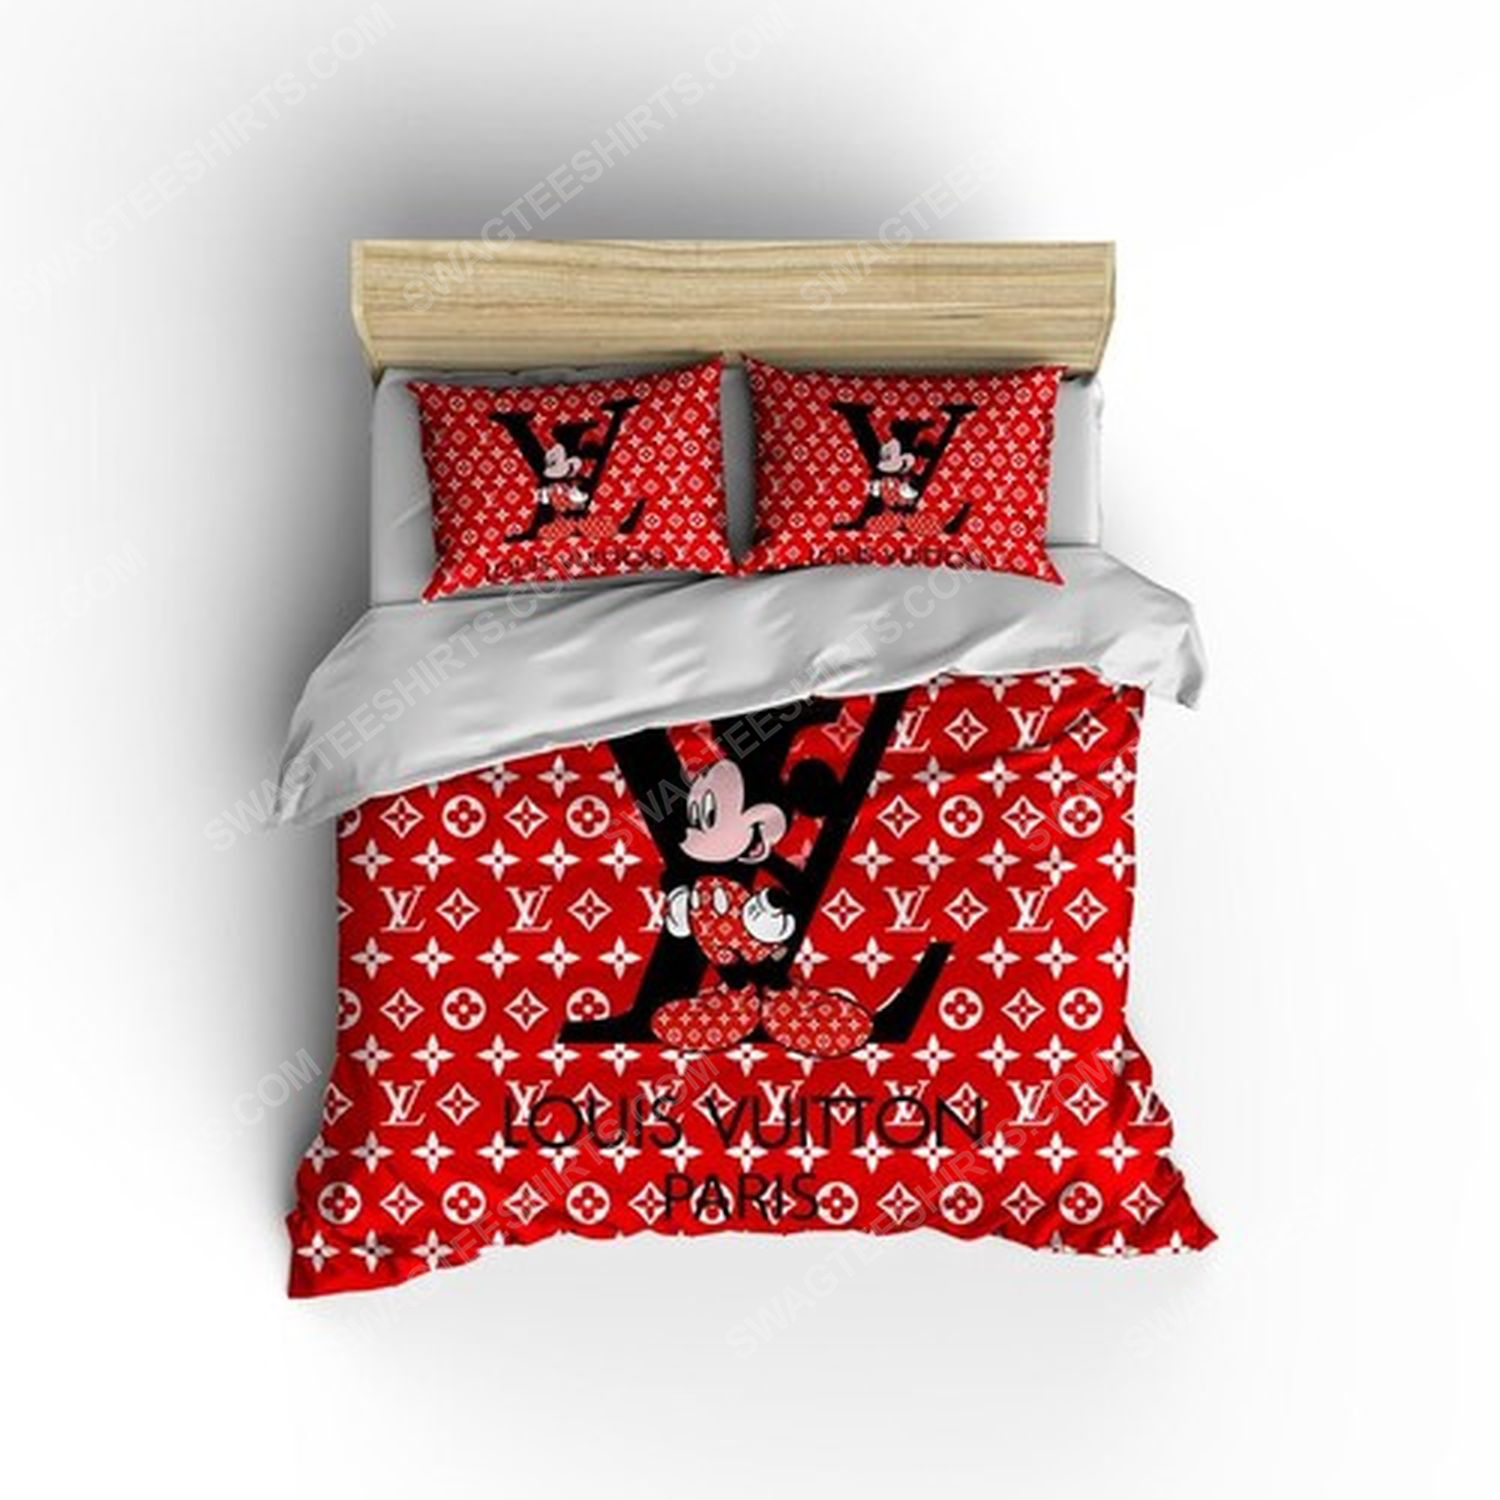 Lv and mickey mouse full print duvet cover bedding set 1